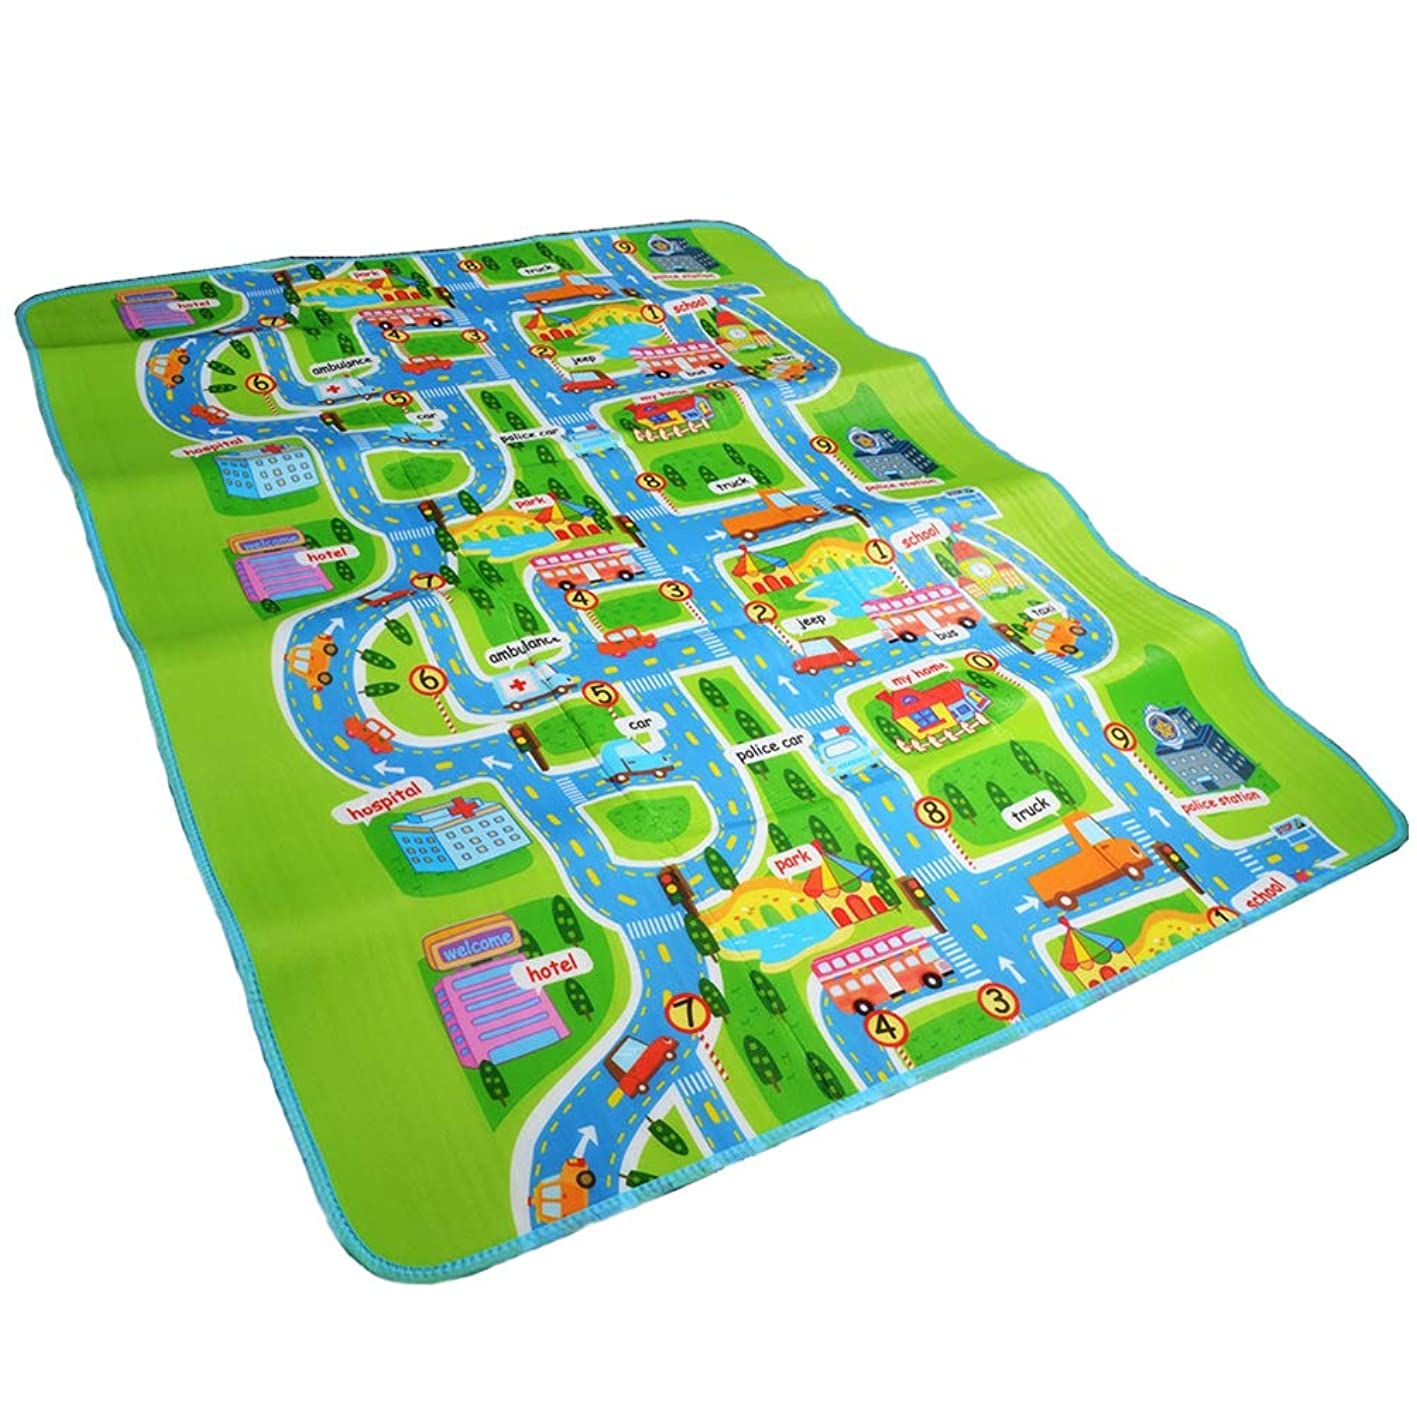 Jim Hugh Road Traffic Play Mat Kids Carpet Playmat Rug City Life Great for Playing with Cars and Toys Play Learn and Have Fun Safely gjdgnxcguxg546